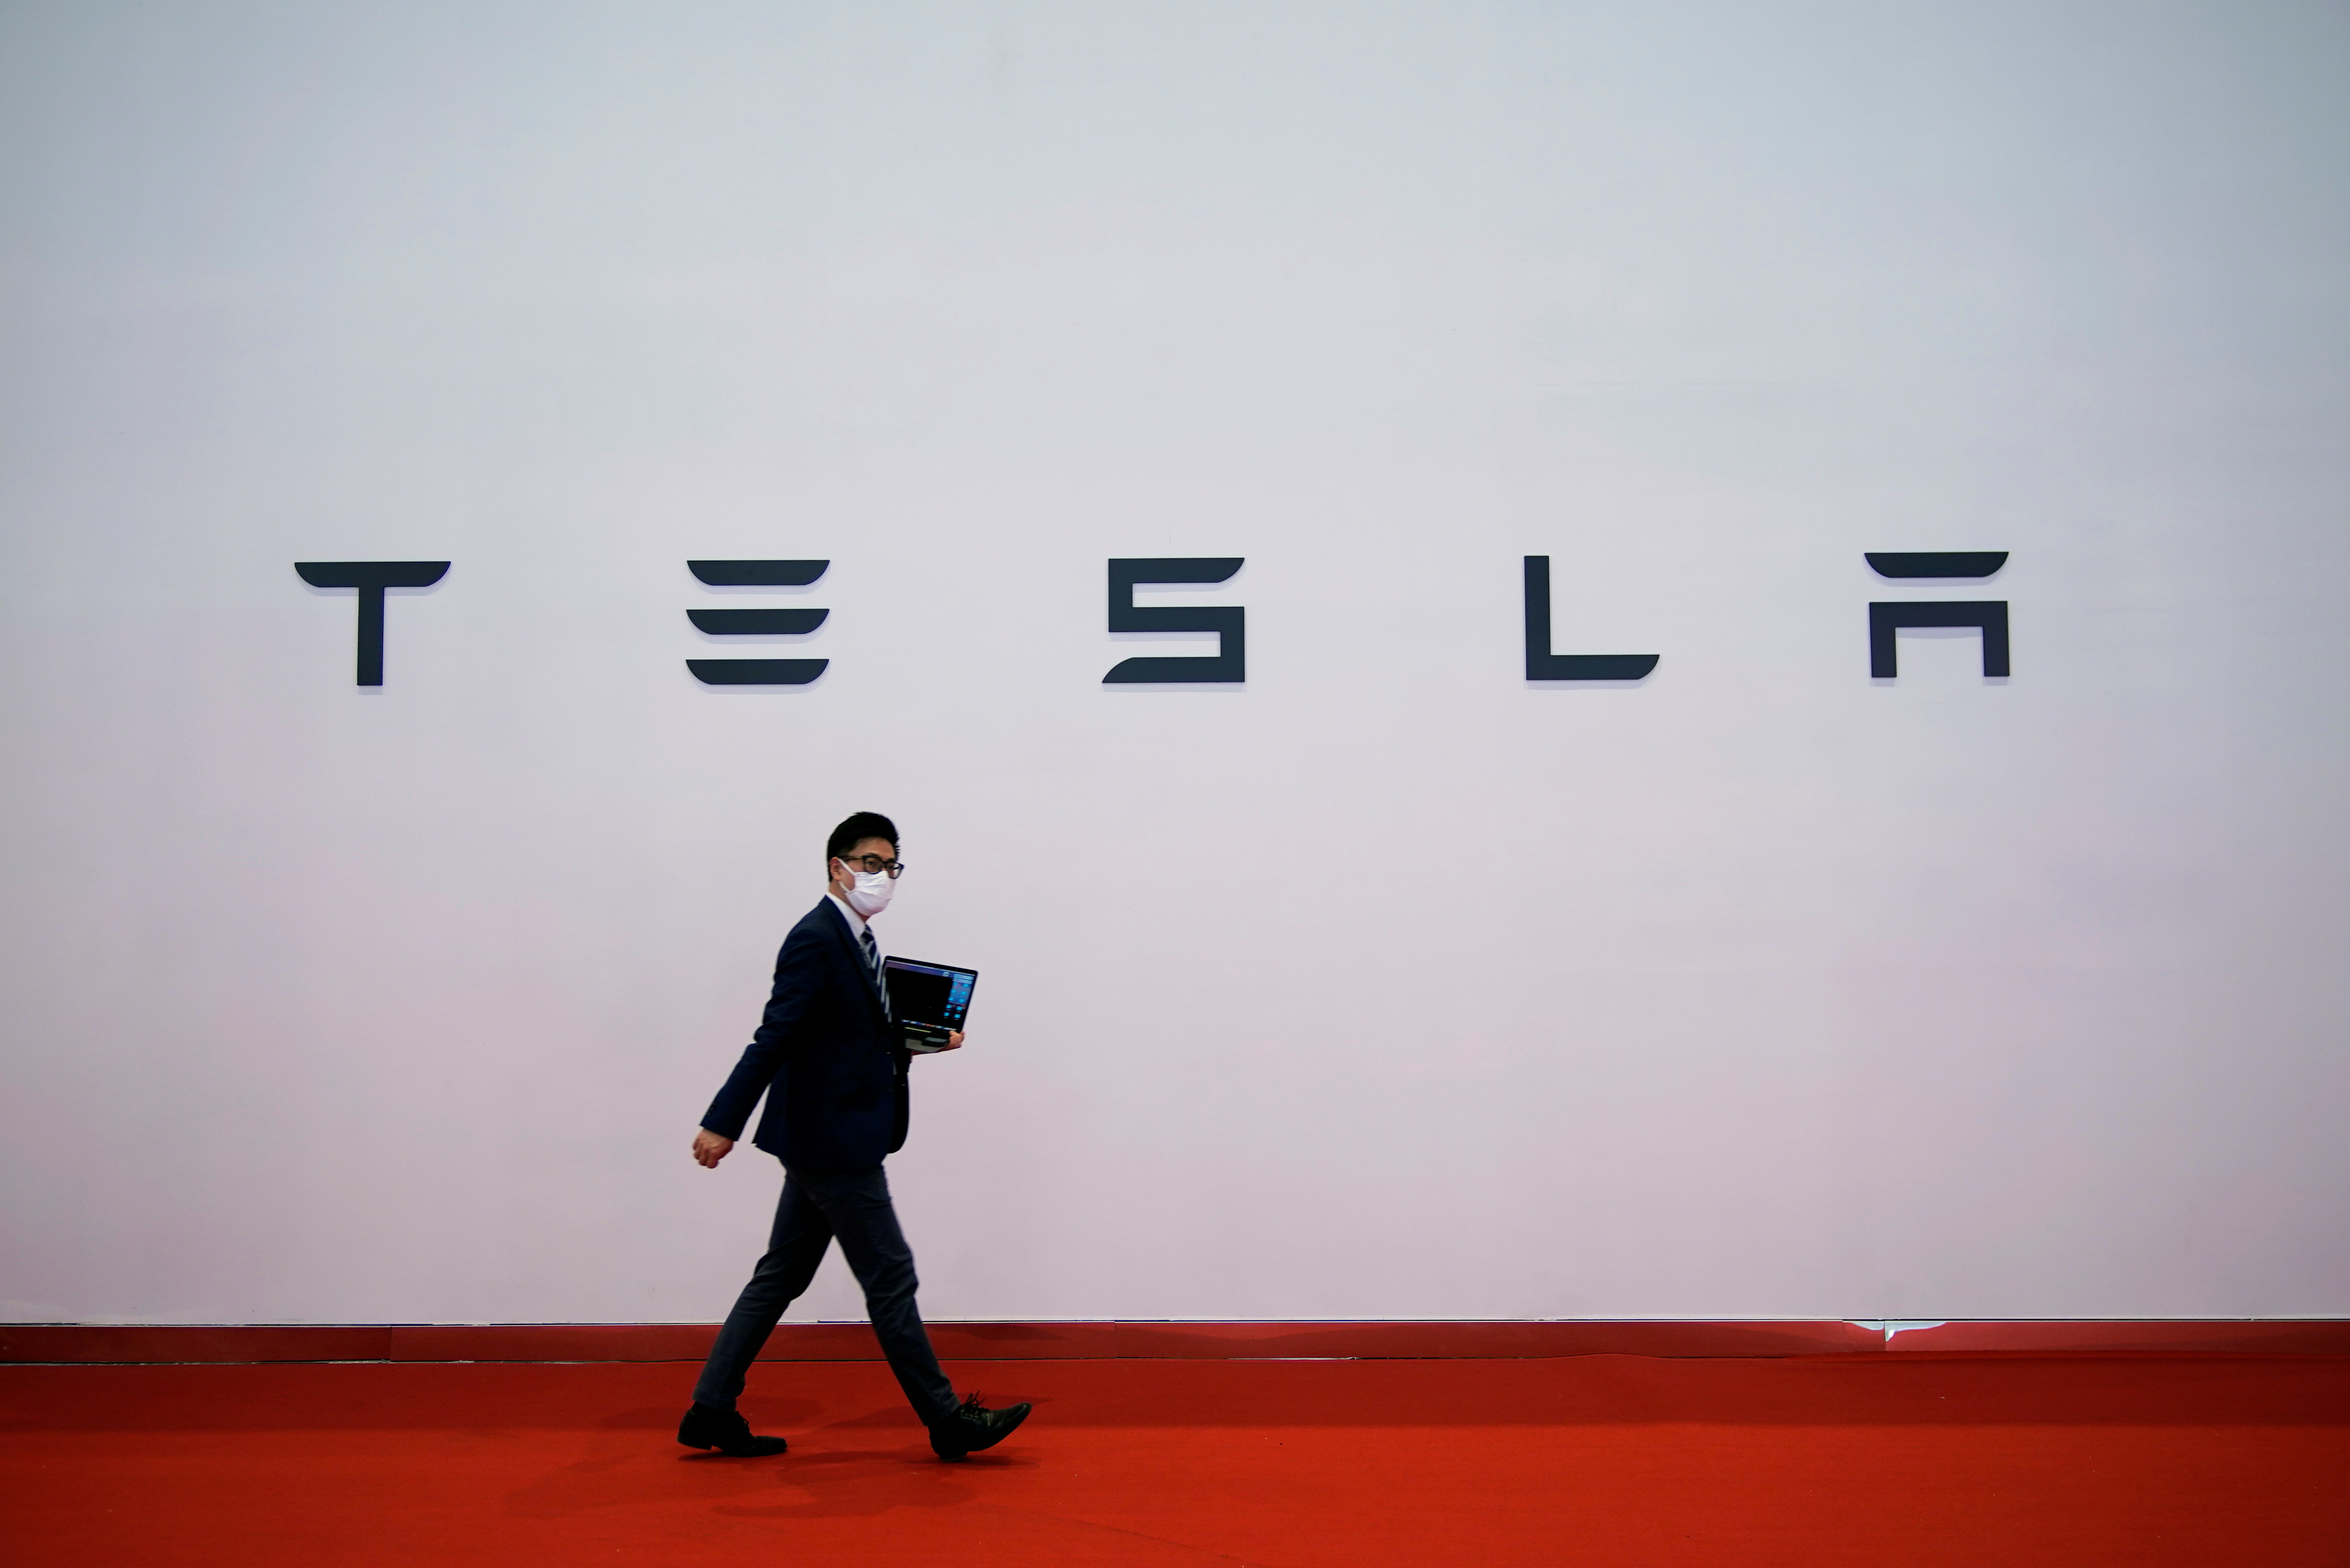 A man holding a computer walks past a sign of electric carmaker Tesla during a media day for the Auto Shanghai show in Shanghai, China April 20, 2021. REUTERS/Aly Song